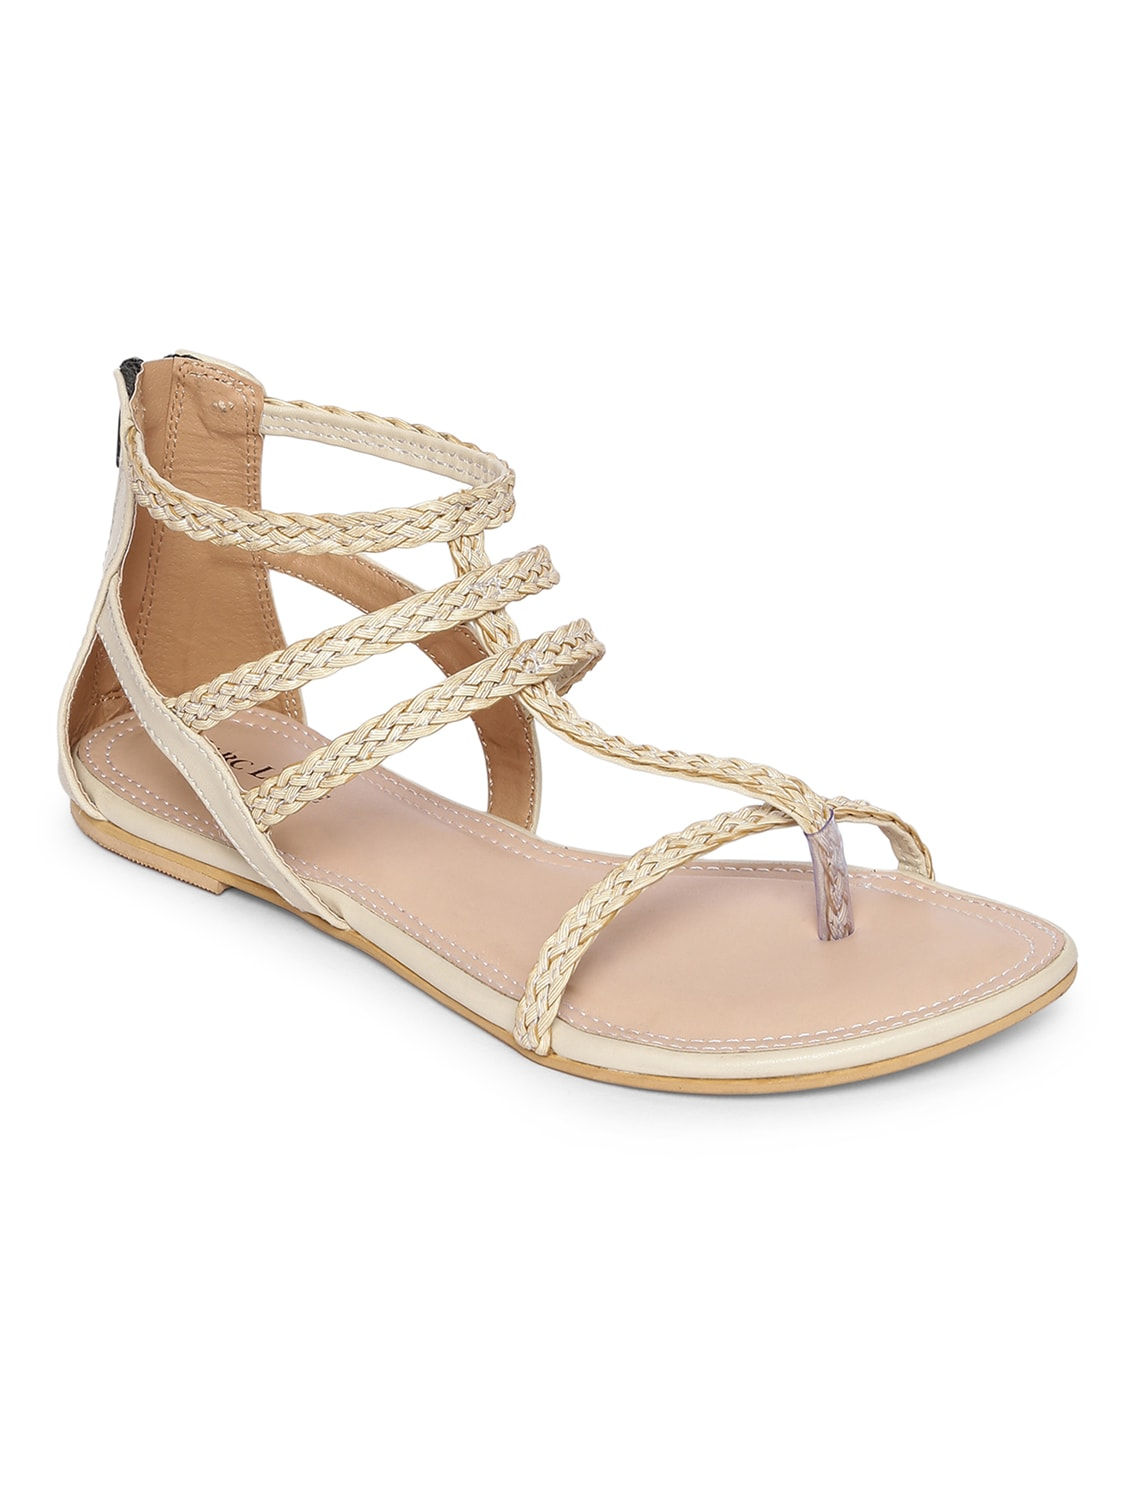 bbbe793c856c Buy Beige Gladiators Sandal for Women from Marc Loire for ₹1047 at 40% off